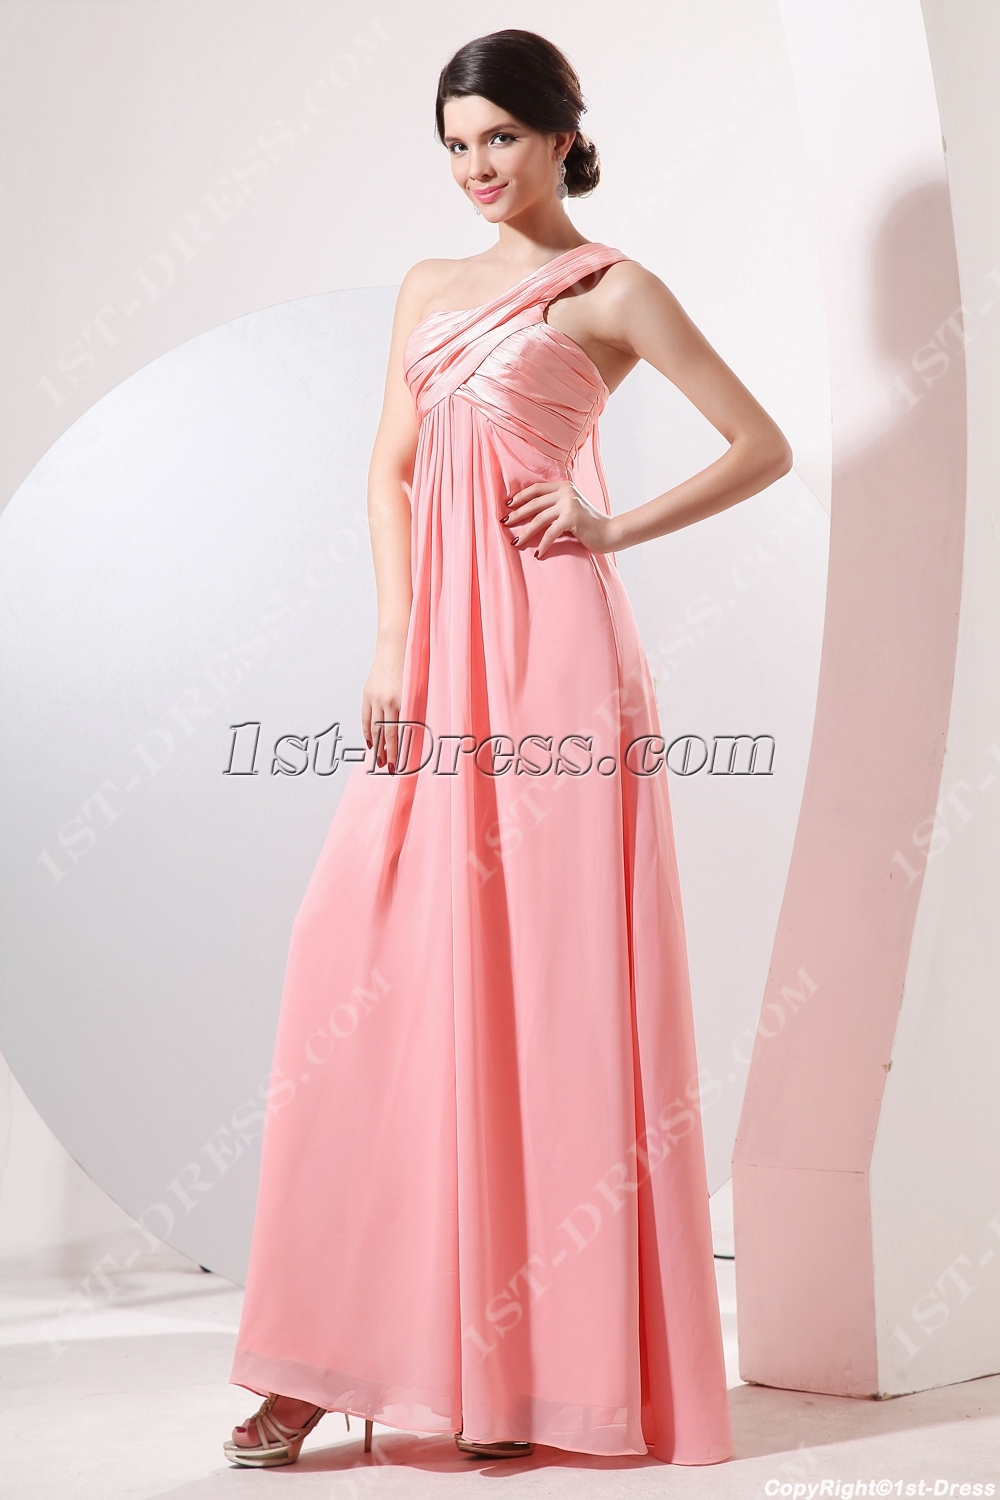 Charming Grecian One Shoulder Maternity Cocktail Dress:1st-dress.com